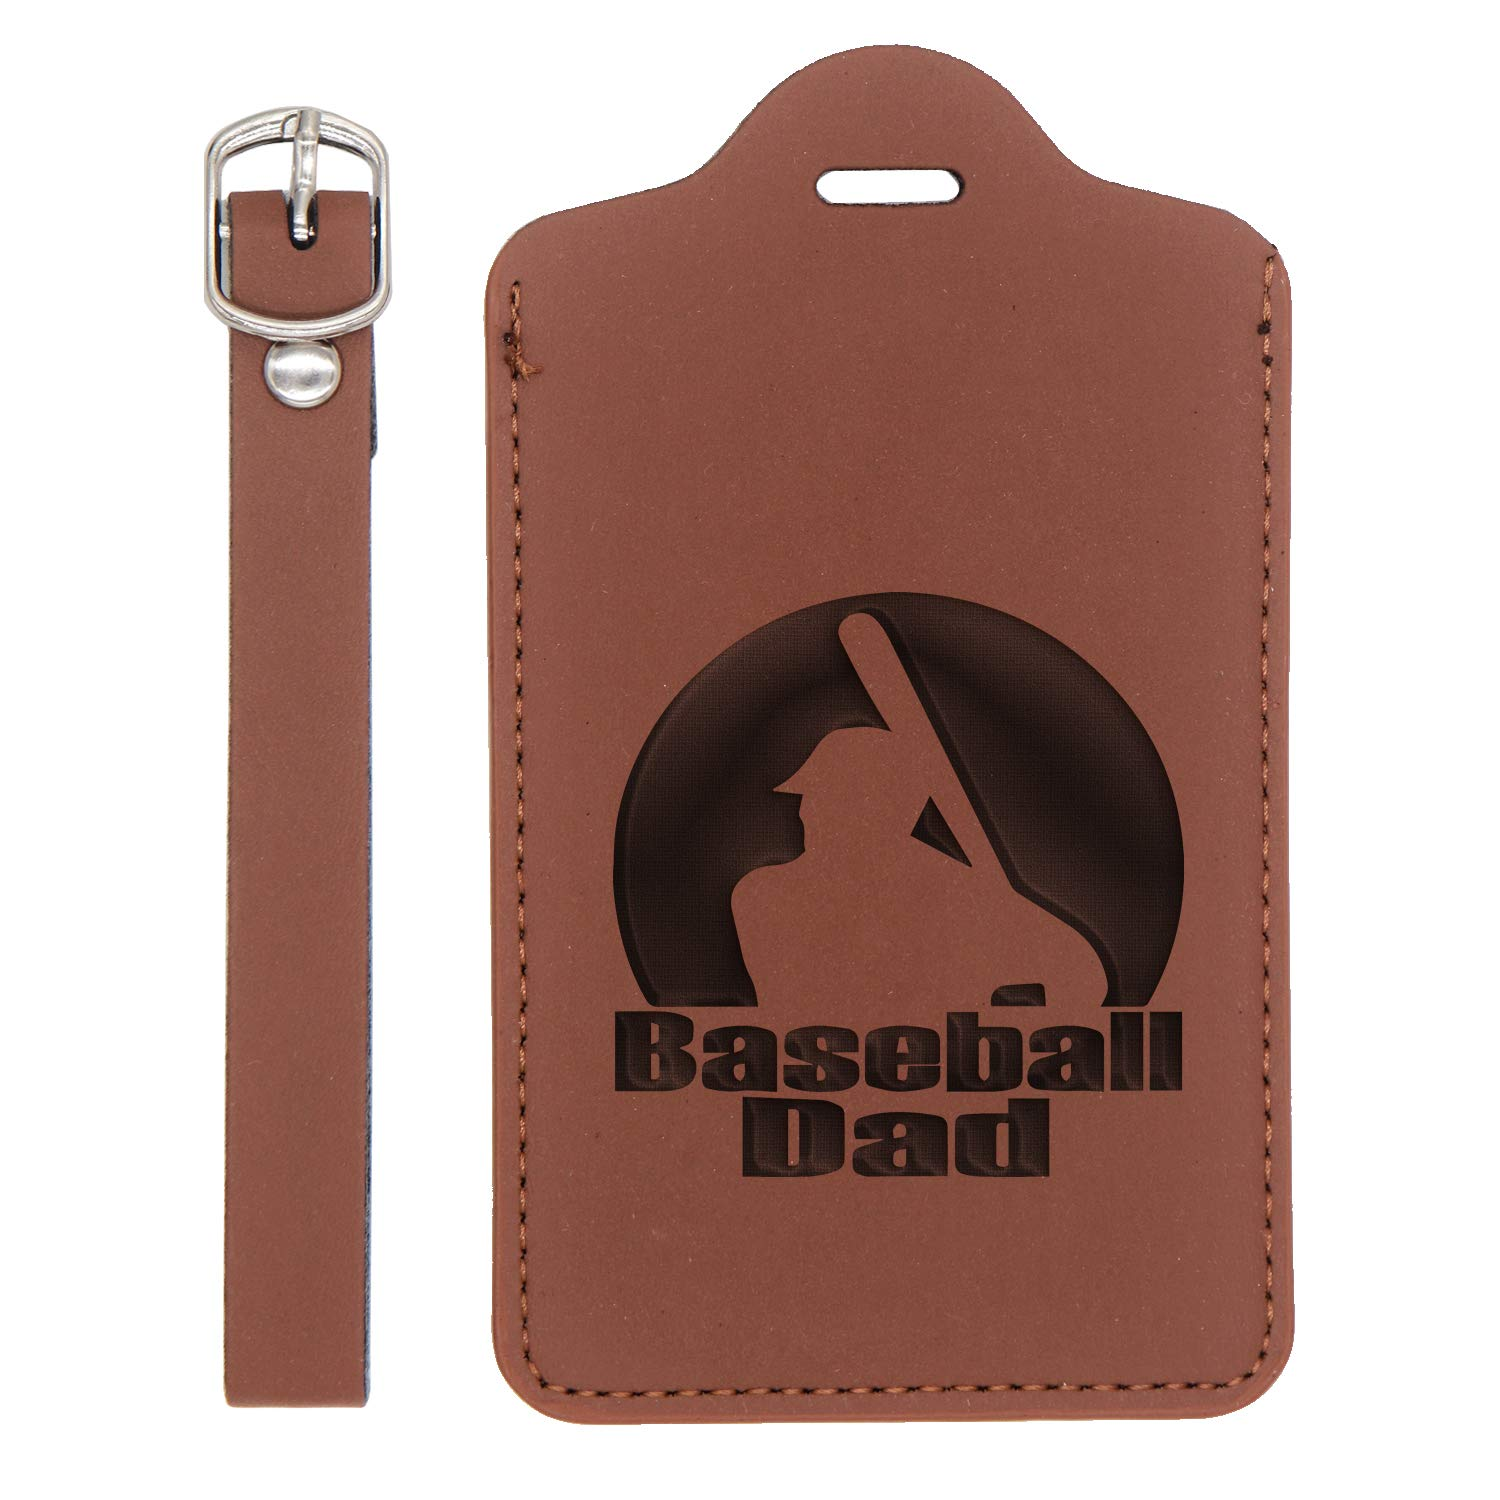 Handcrafted By Mastercraftsmen London Tan - Set Of 2 For Any Type Of Luggage Dad Engraved Synthetic Pu Leather Luggage Tag - United States Standard